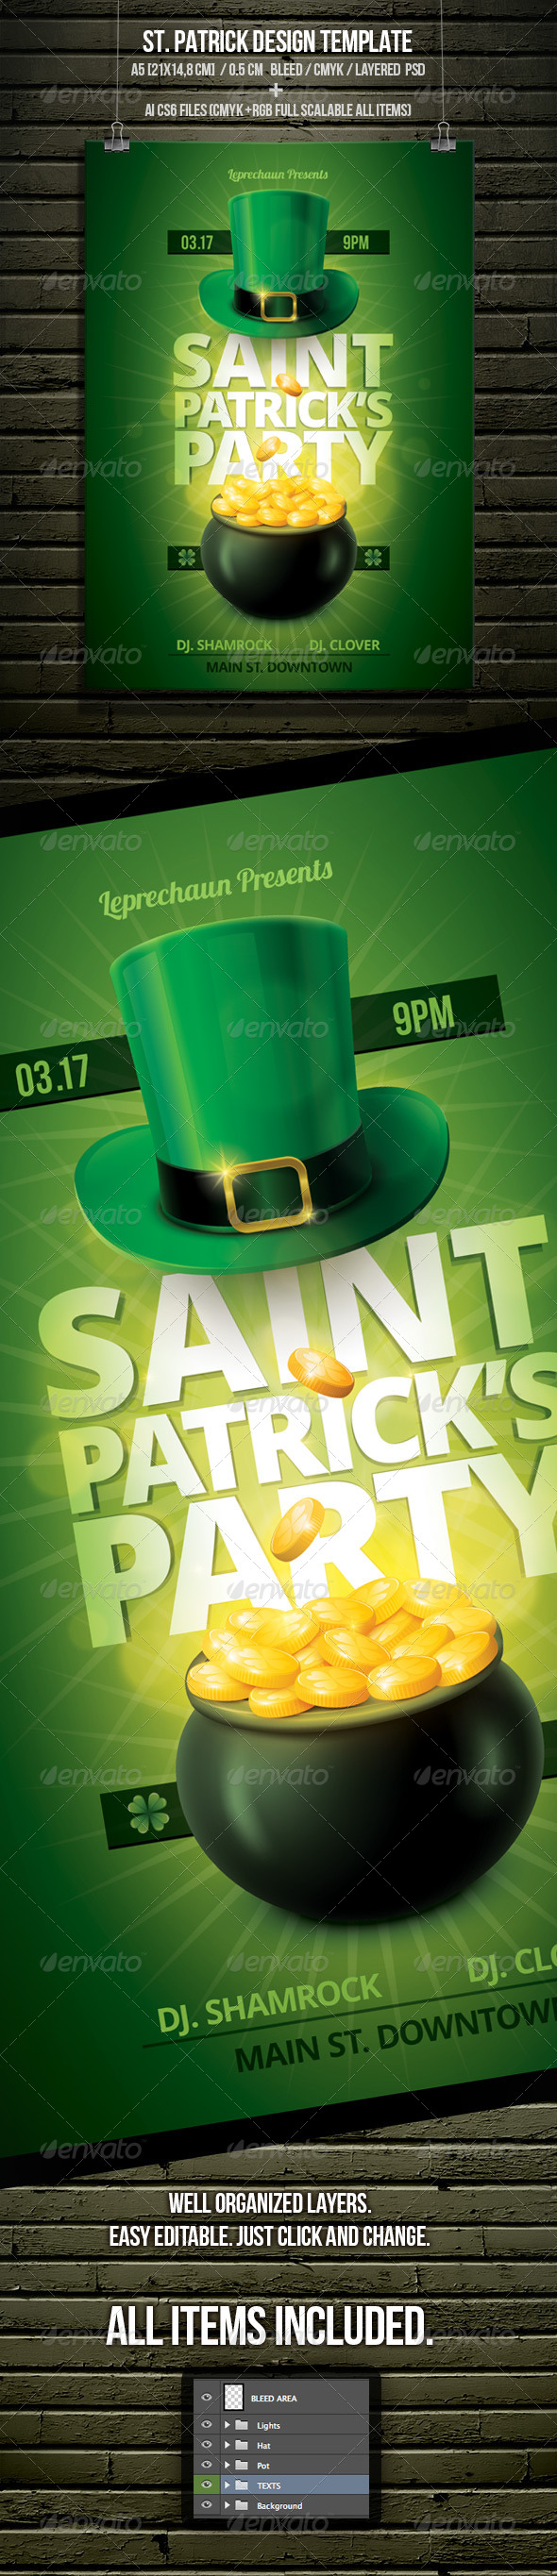 St. Patrick's Day Party Flyer Template - Flyers Print Templates